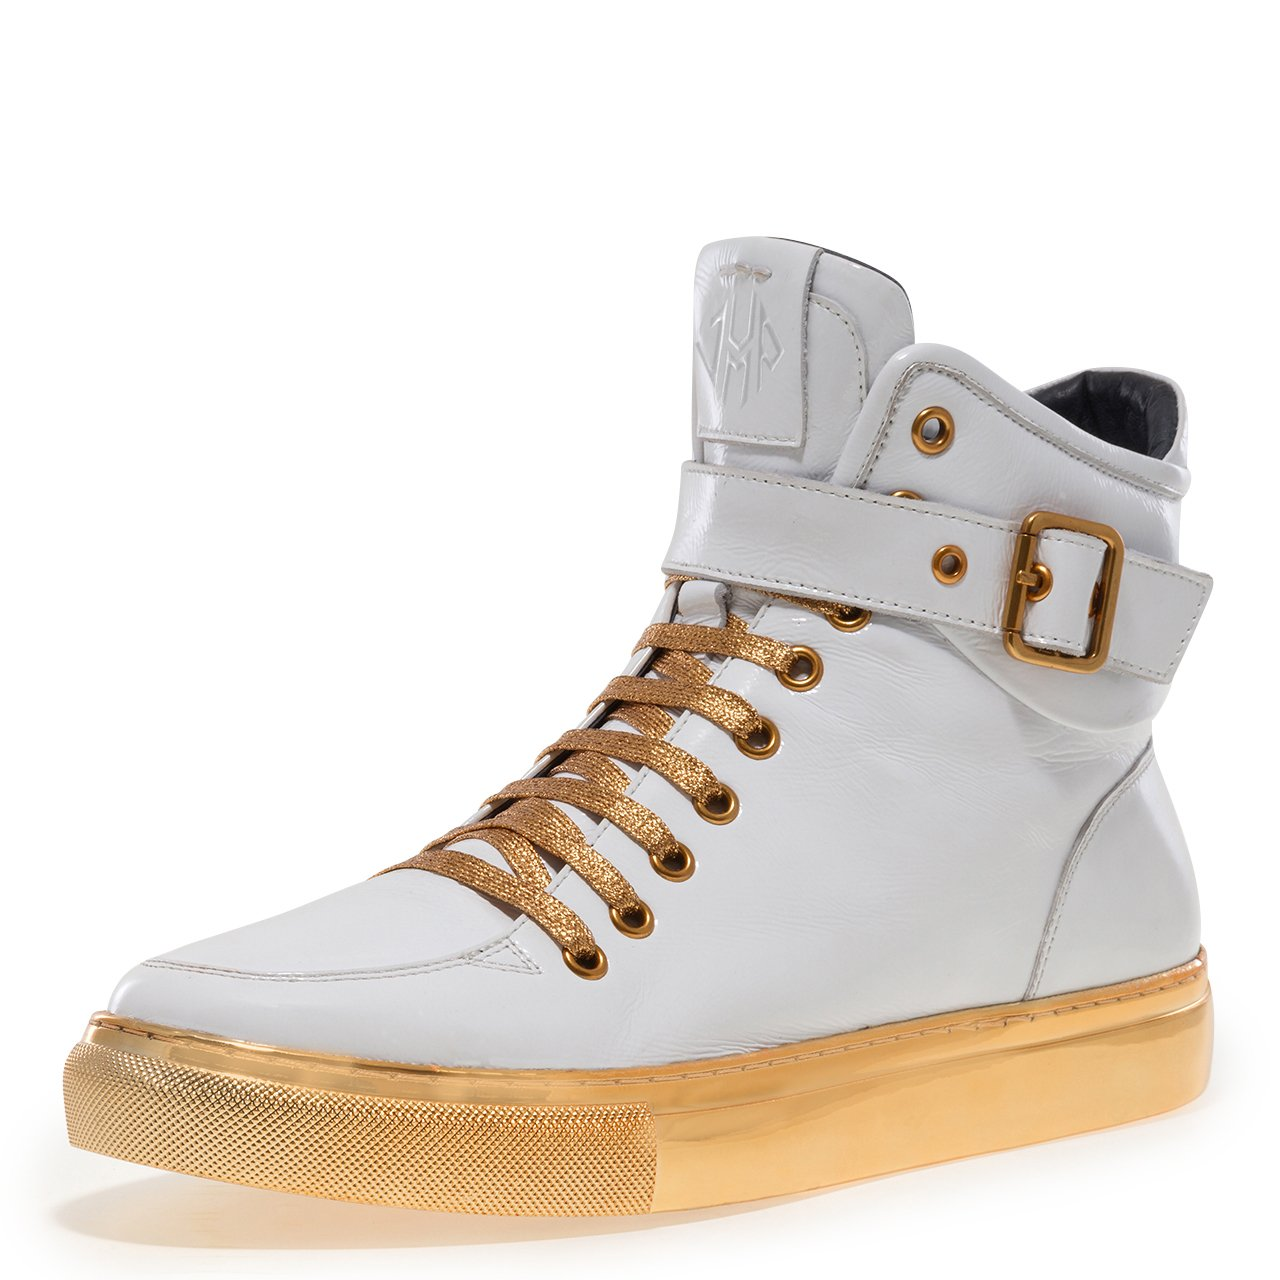 Jump Newyork Men's Sullivan Round Toe Hand-Painted Leather Lace-Up Inside Zipper and Strap High-Top Sneaker White Patent 9 D US Men